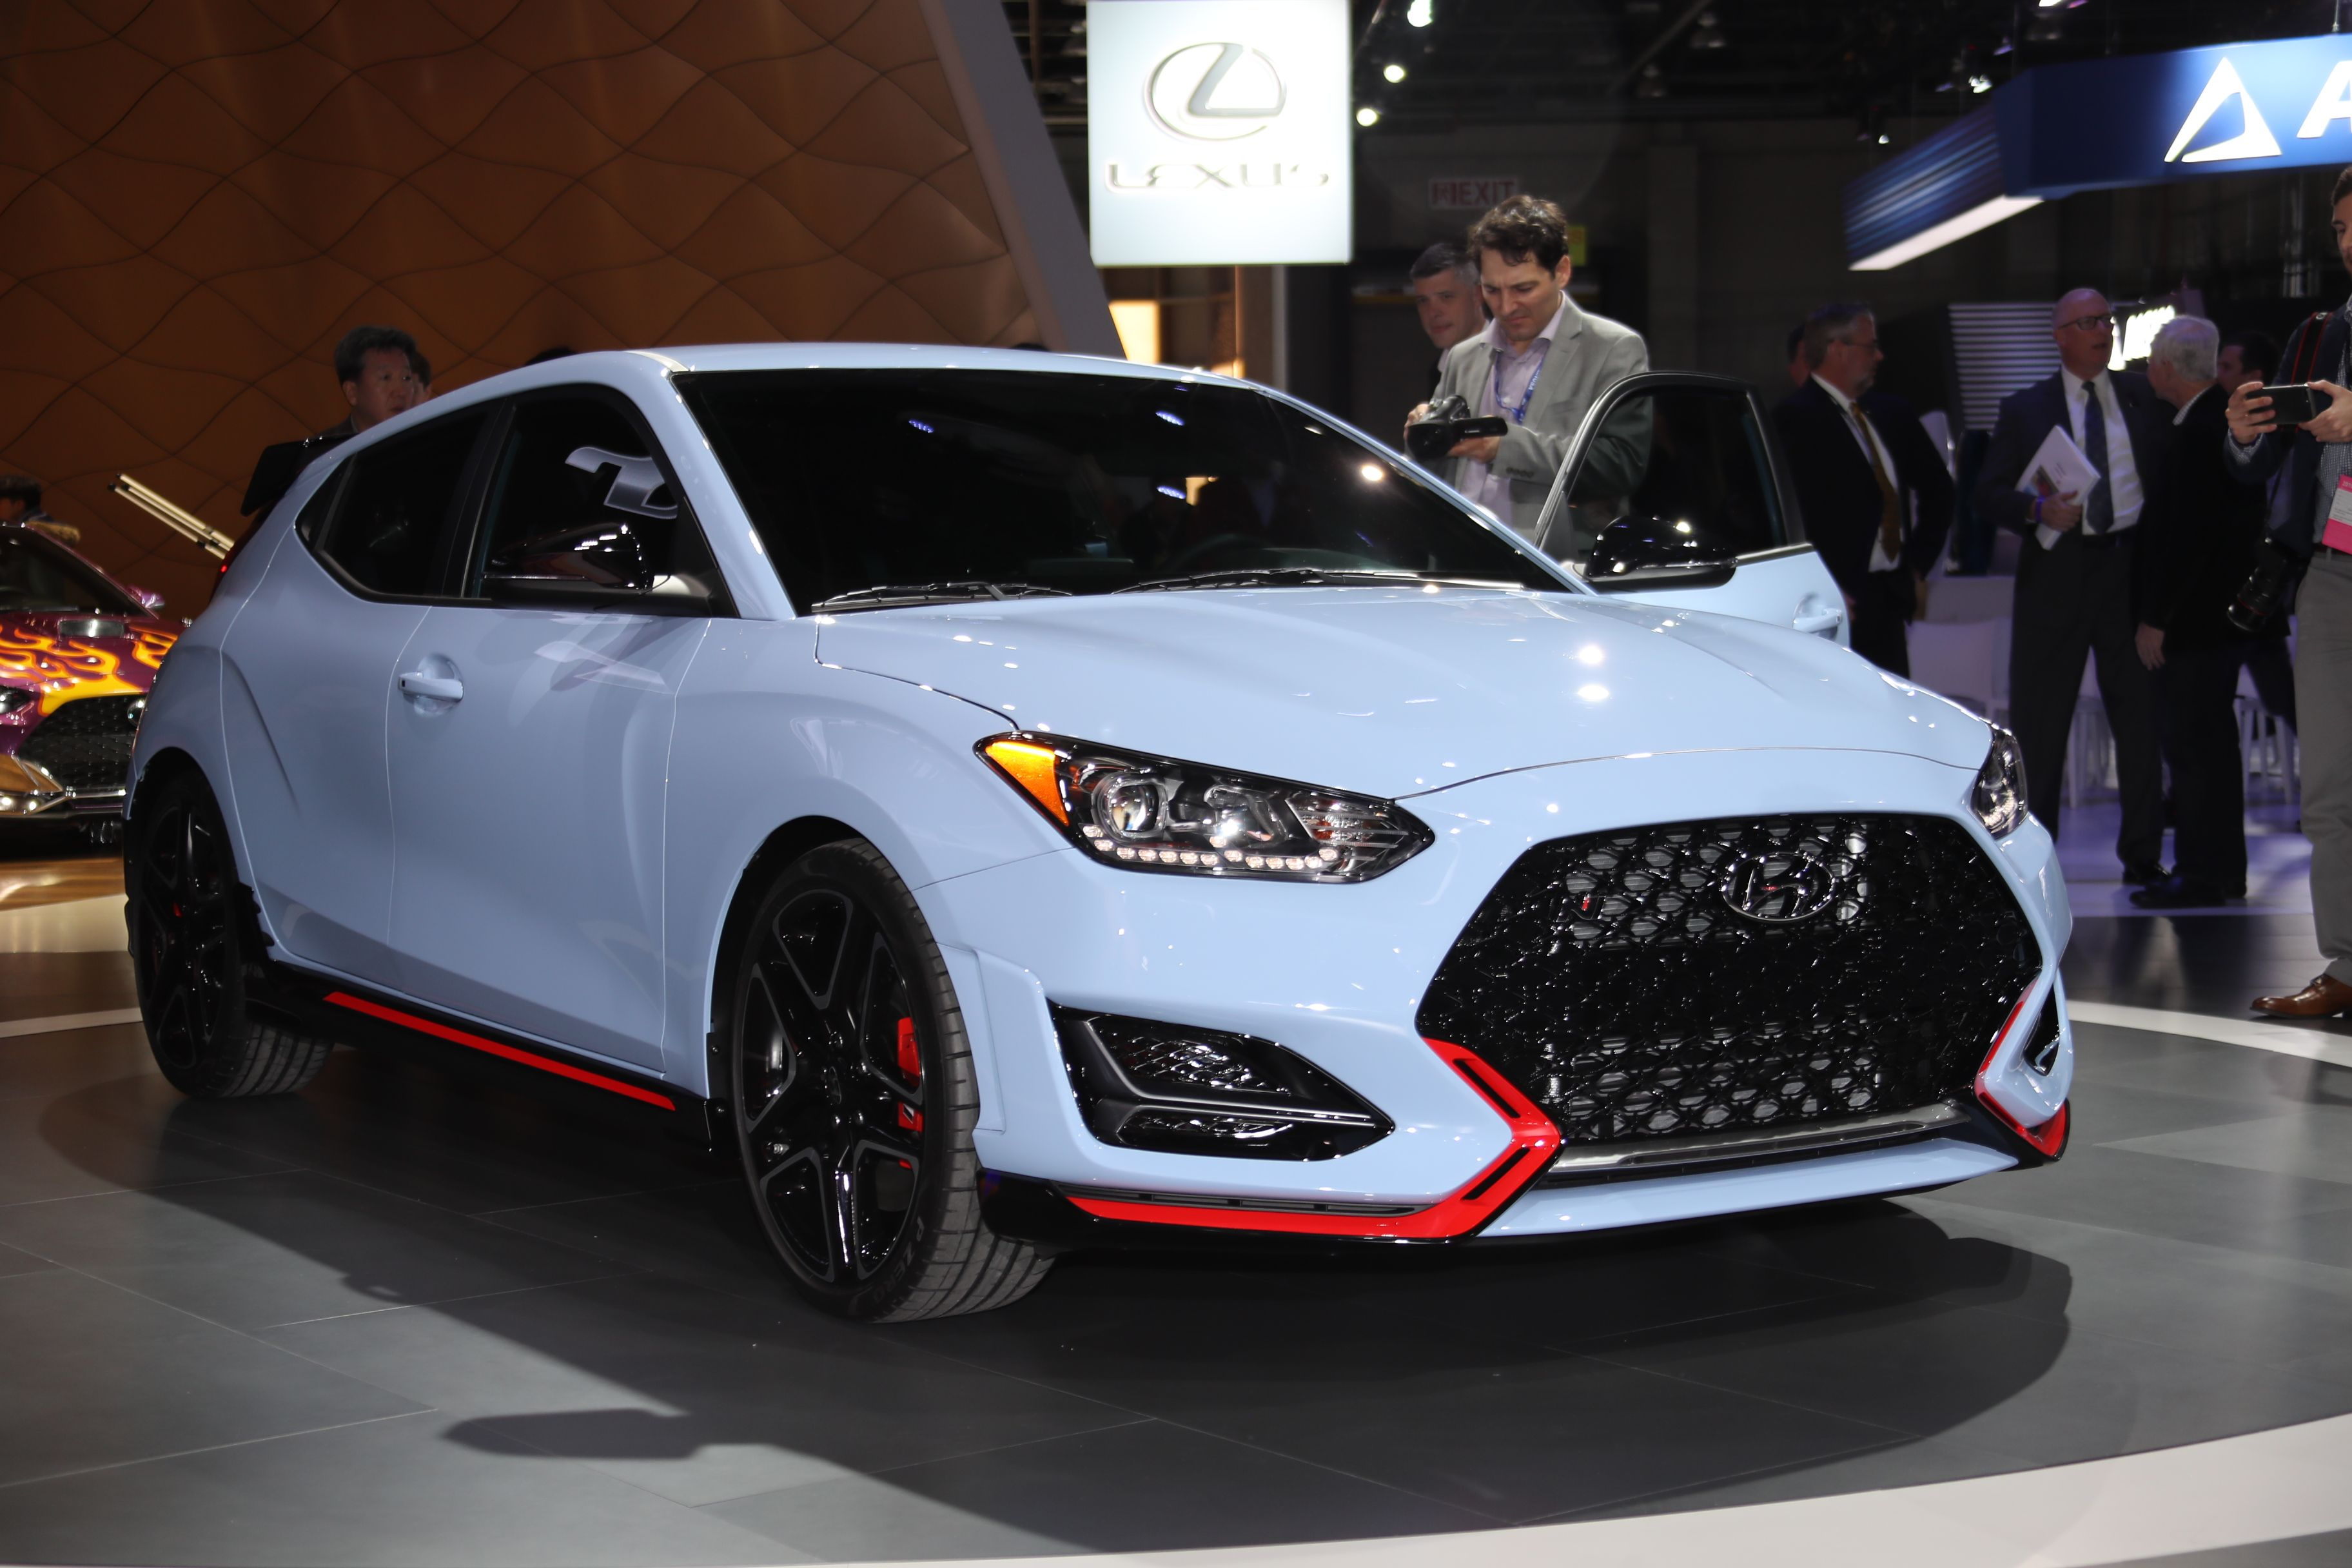 Detroit Auto Show News Pictures Road And Track - Autoshow